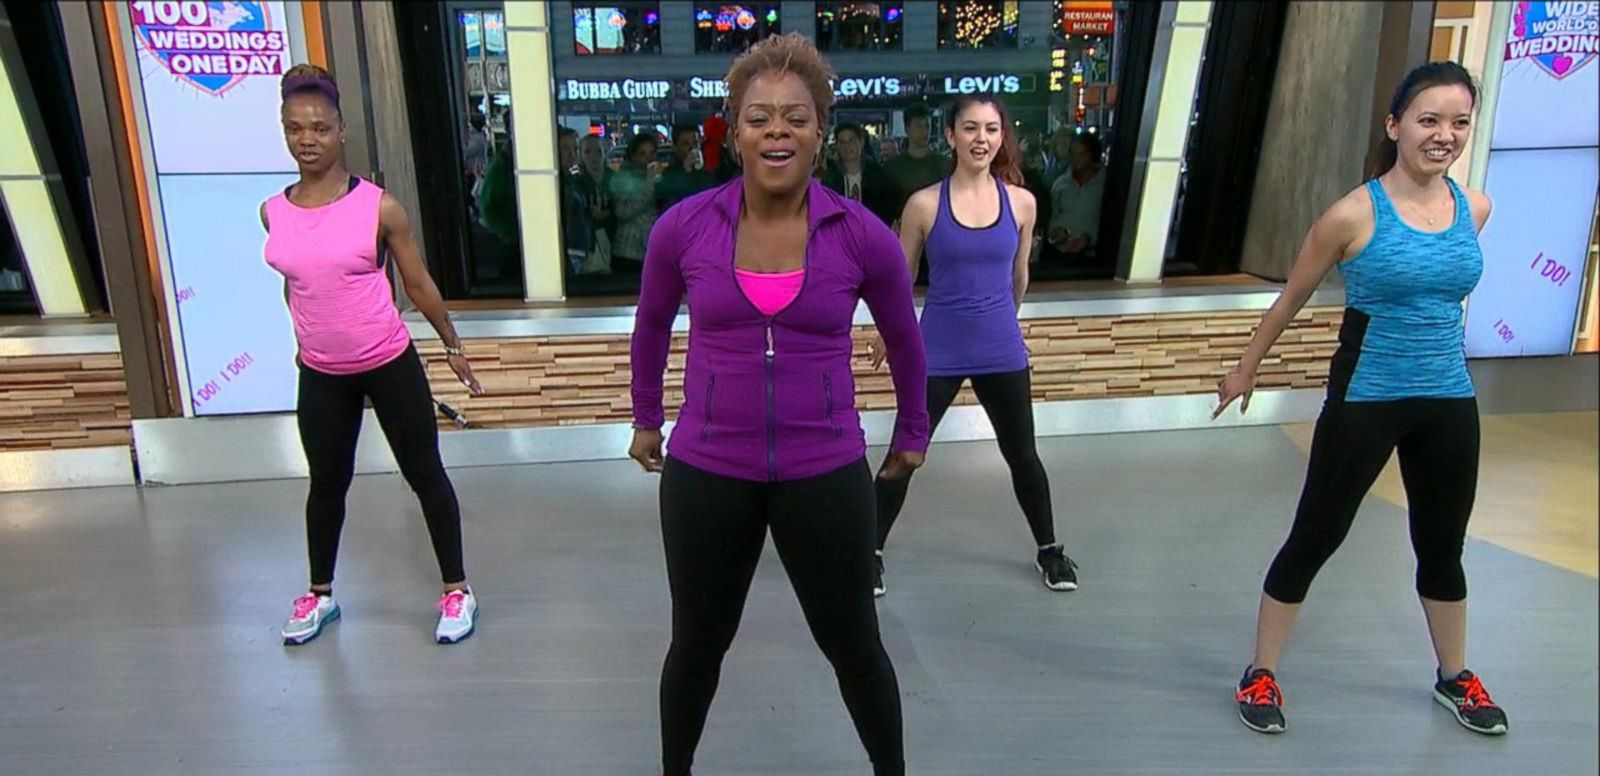 VIDEO: Bridal Bootcamp Workout Tips to Whip You Into Shape for the Big Day